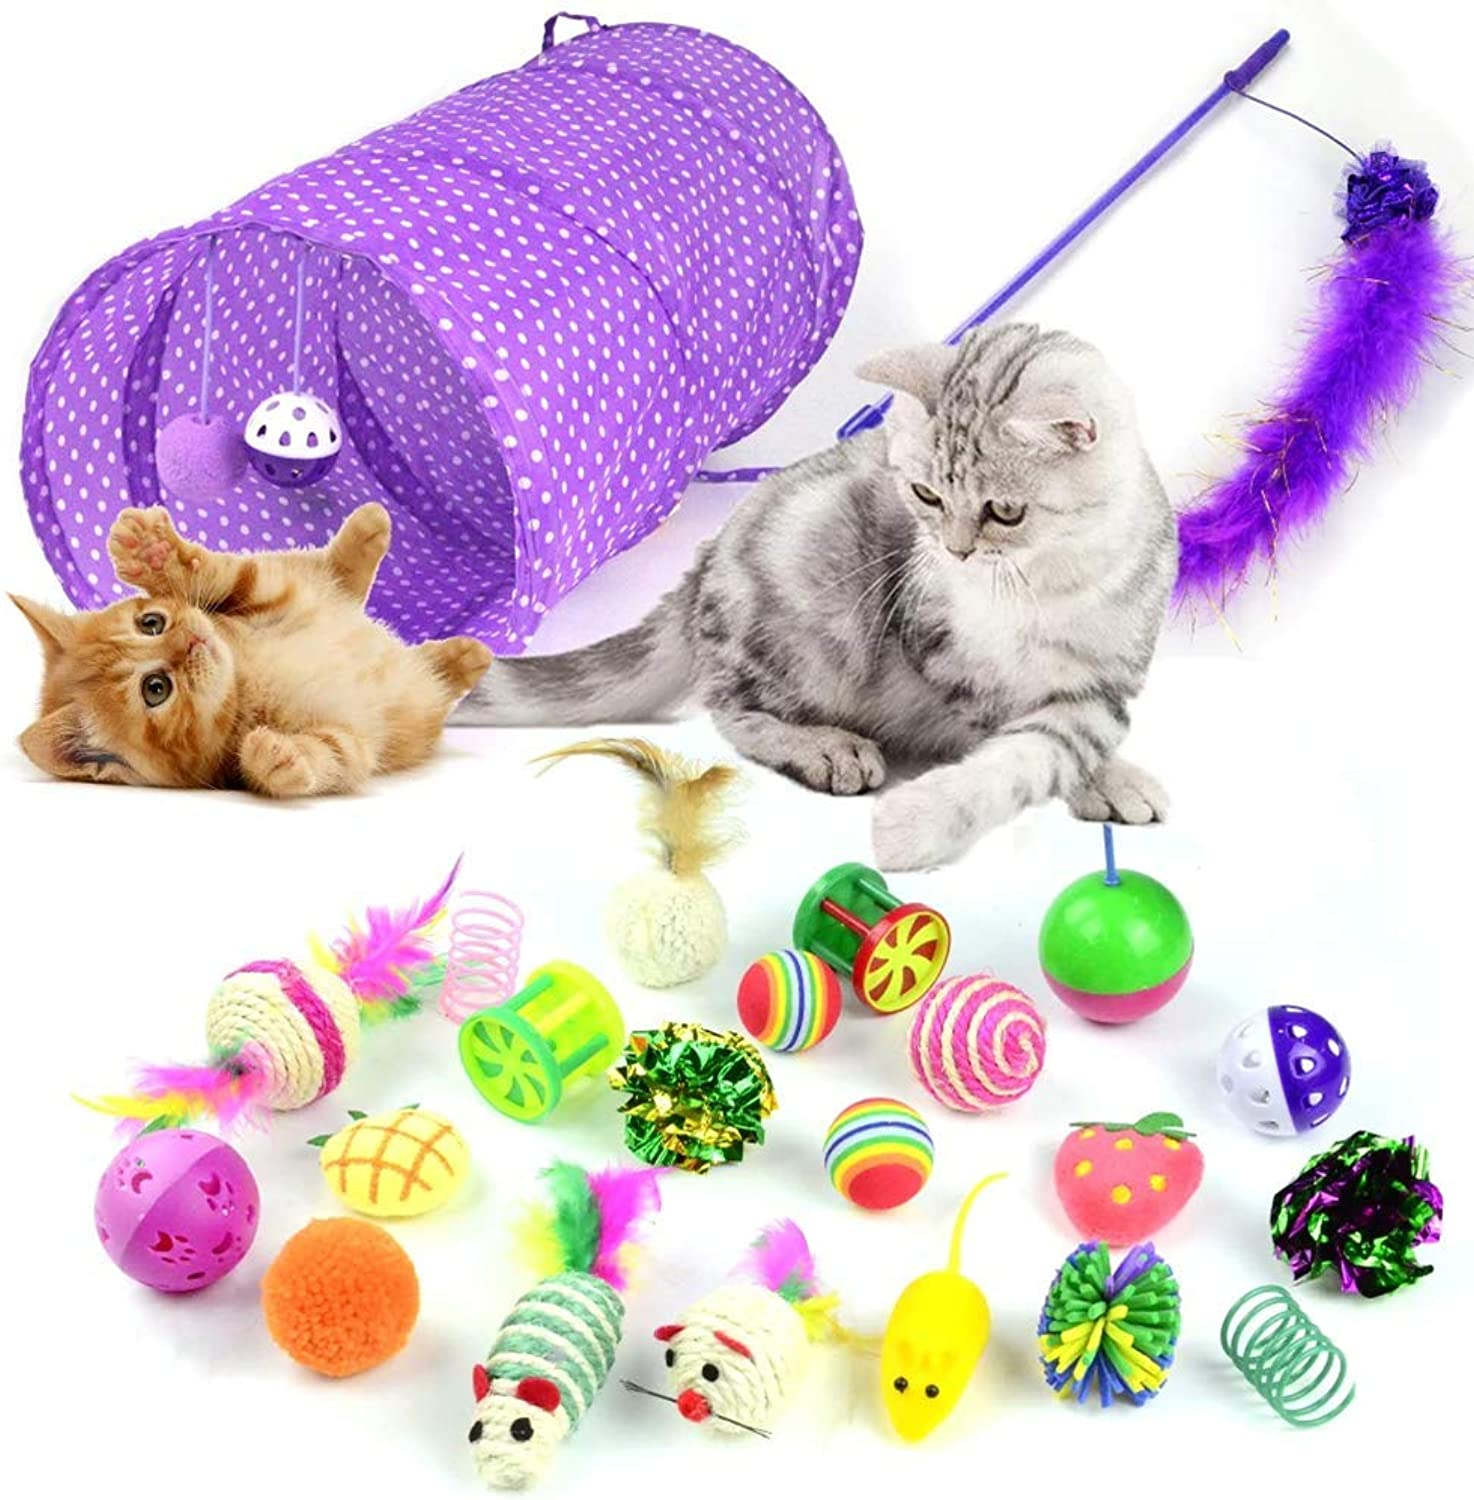 24PCS Cat Toys Cat Funny Stick Tunnel for Kitten Bells Interactive Cats Toy colorful Mouse Bell New Arrival Pet Products